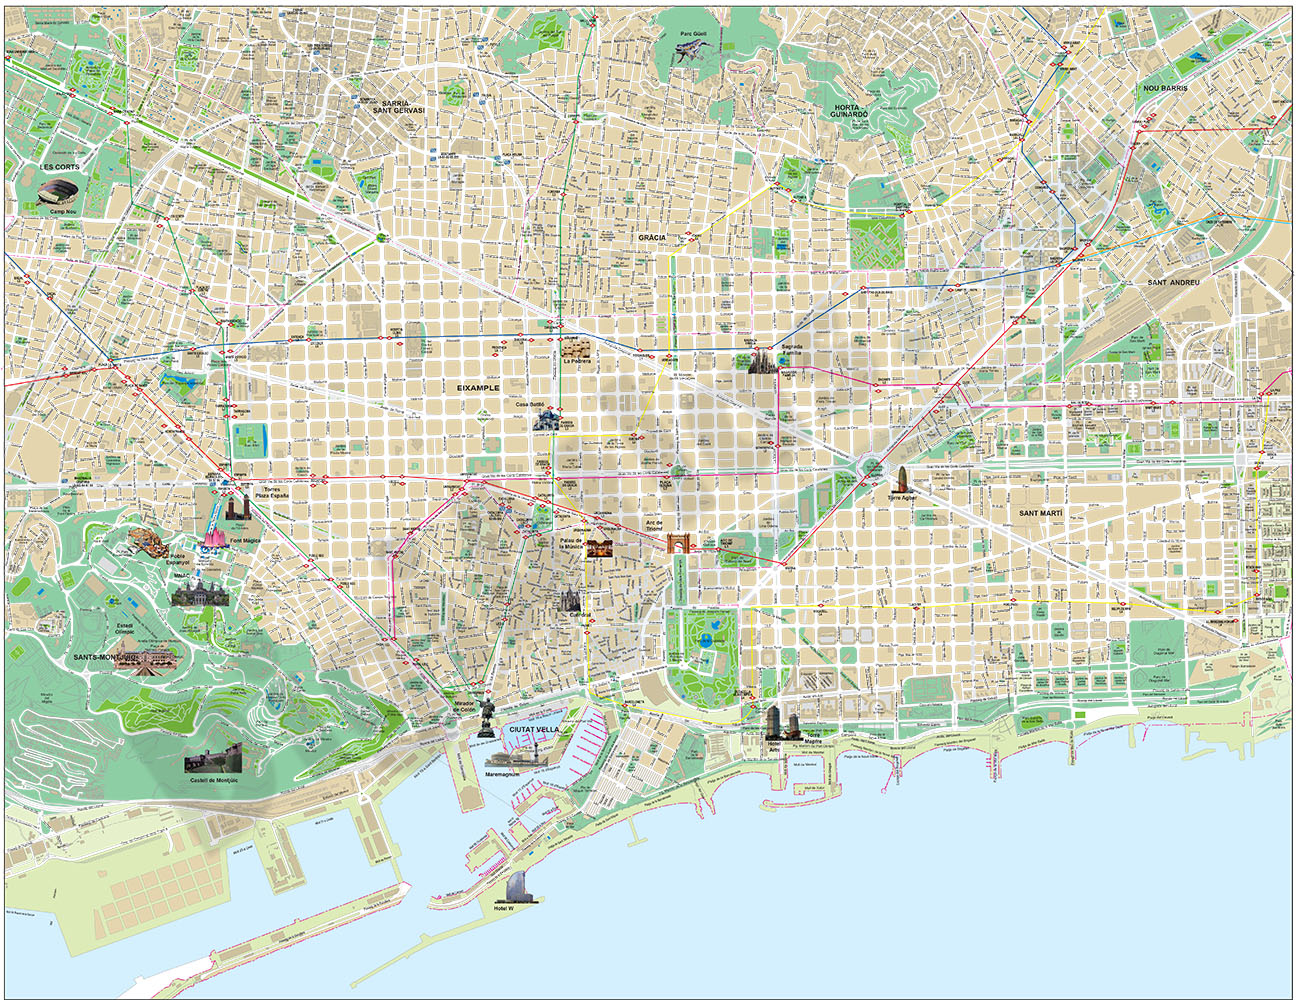 Barcelona - touristic city map